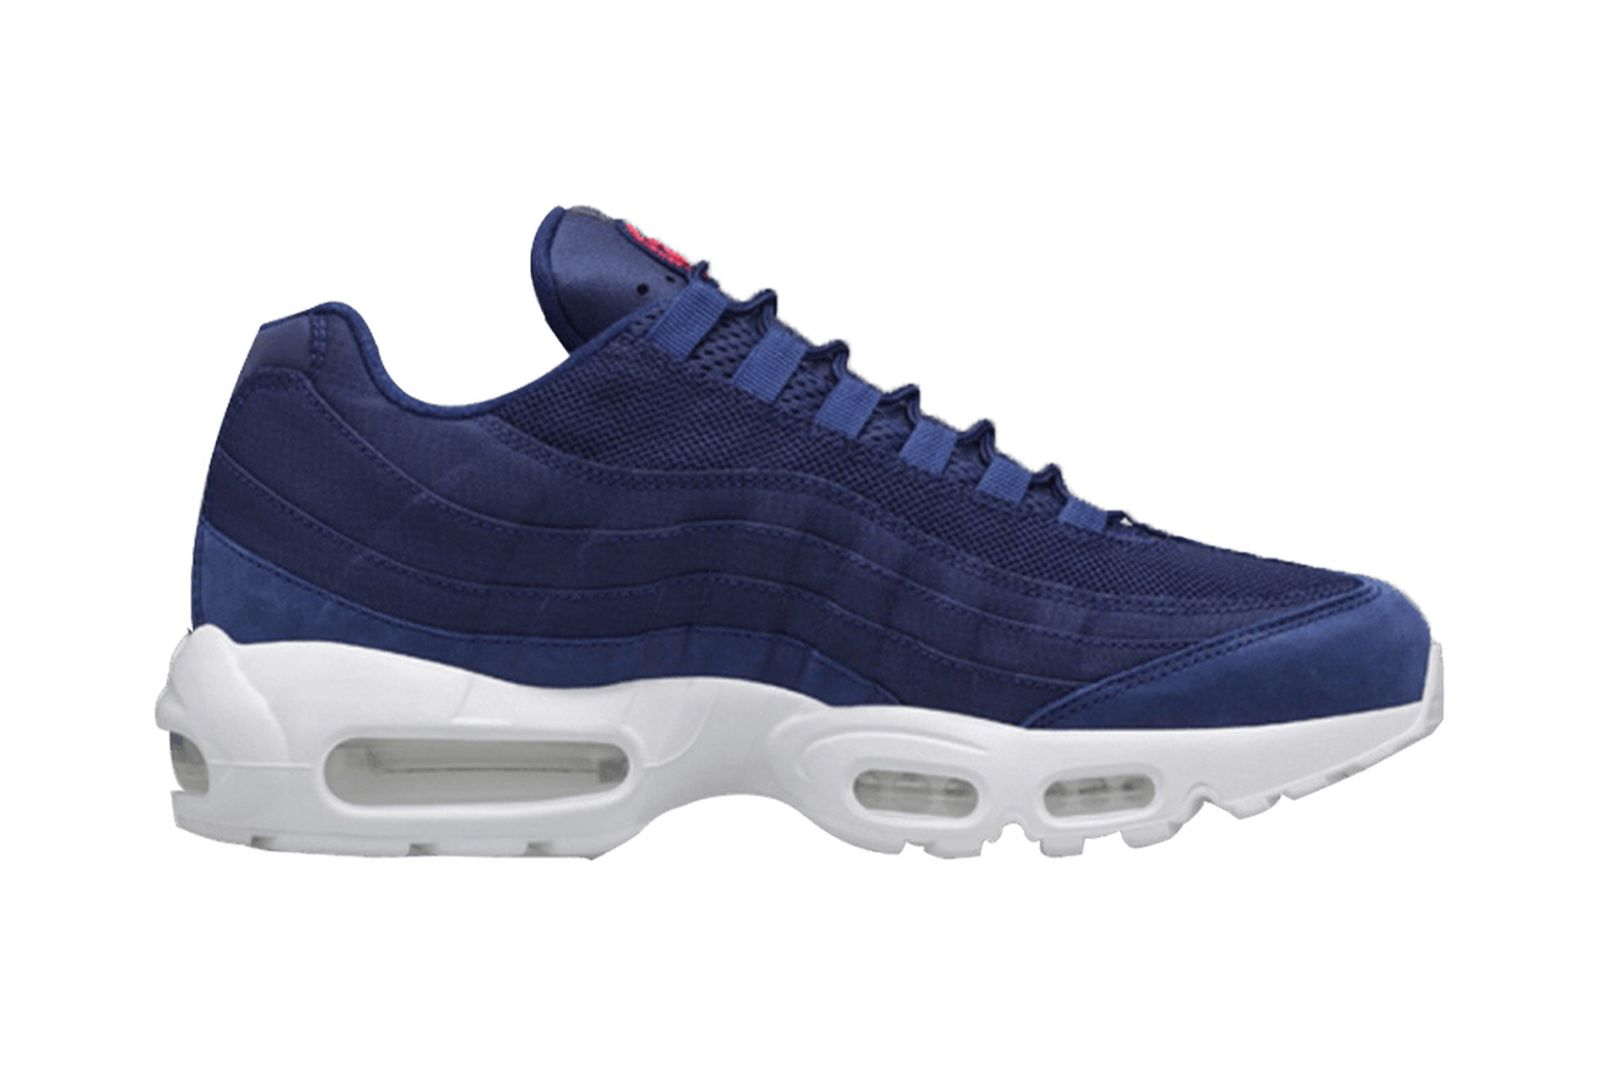 stussy-nike-sneaker-collaboration-roundup-new-01